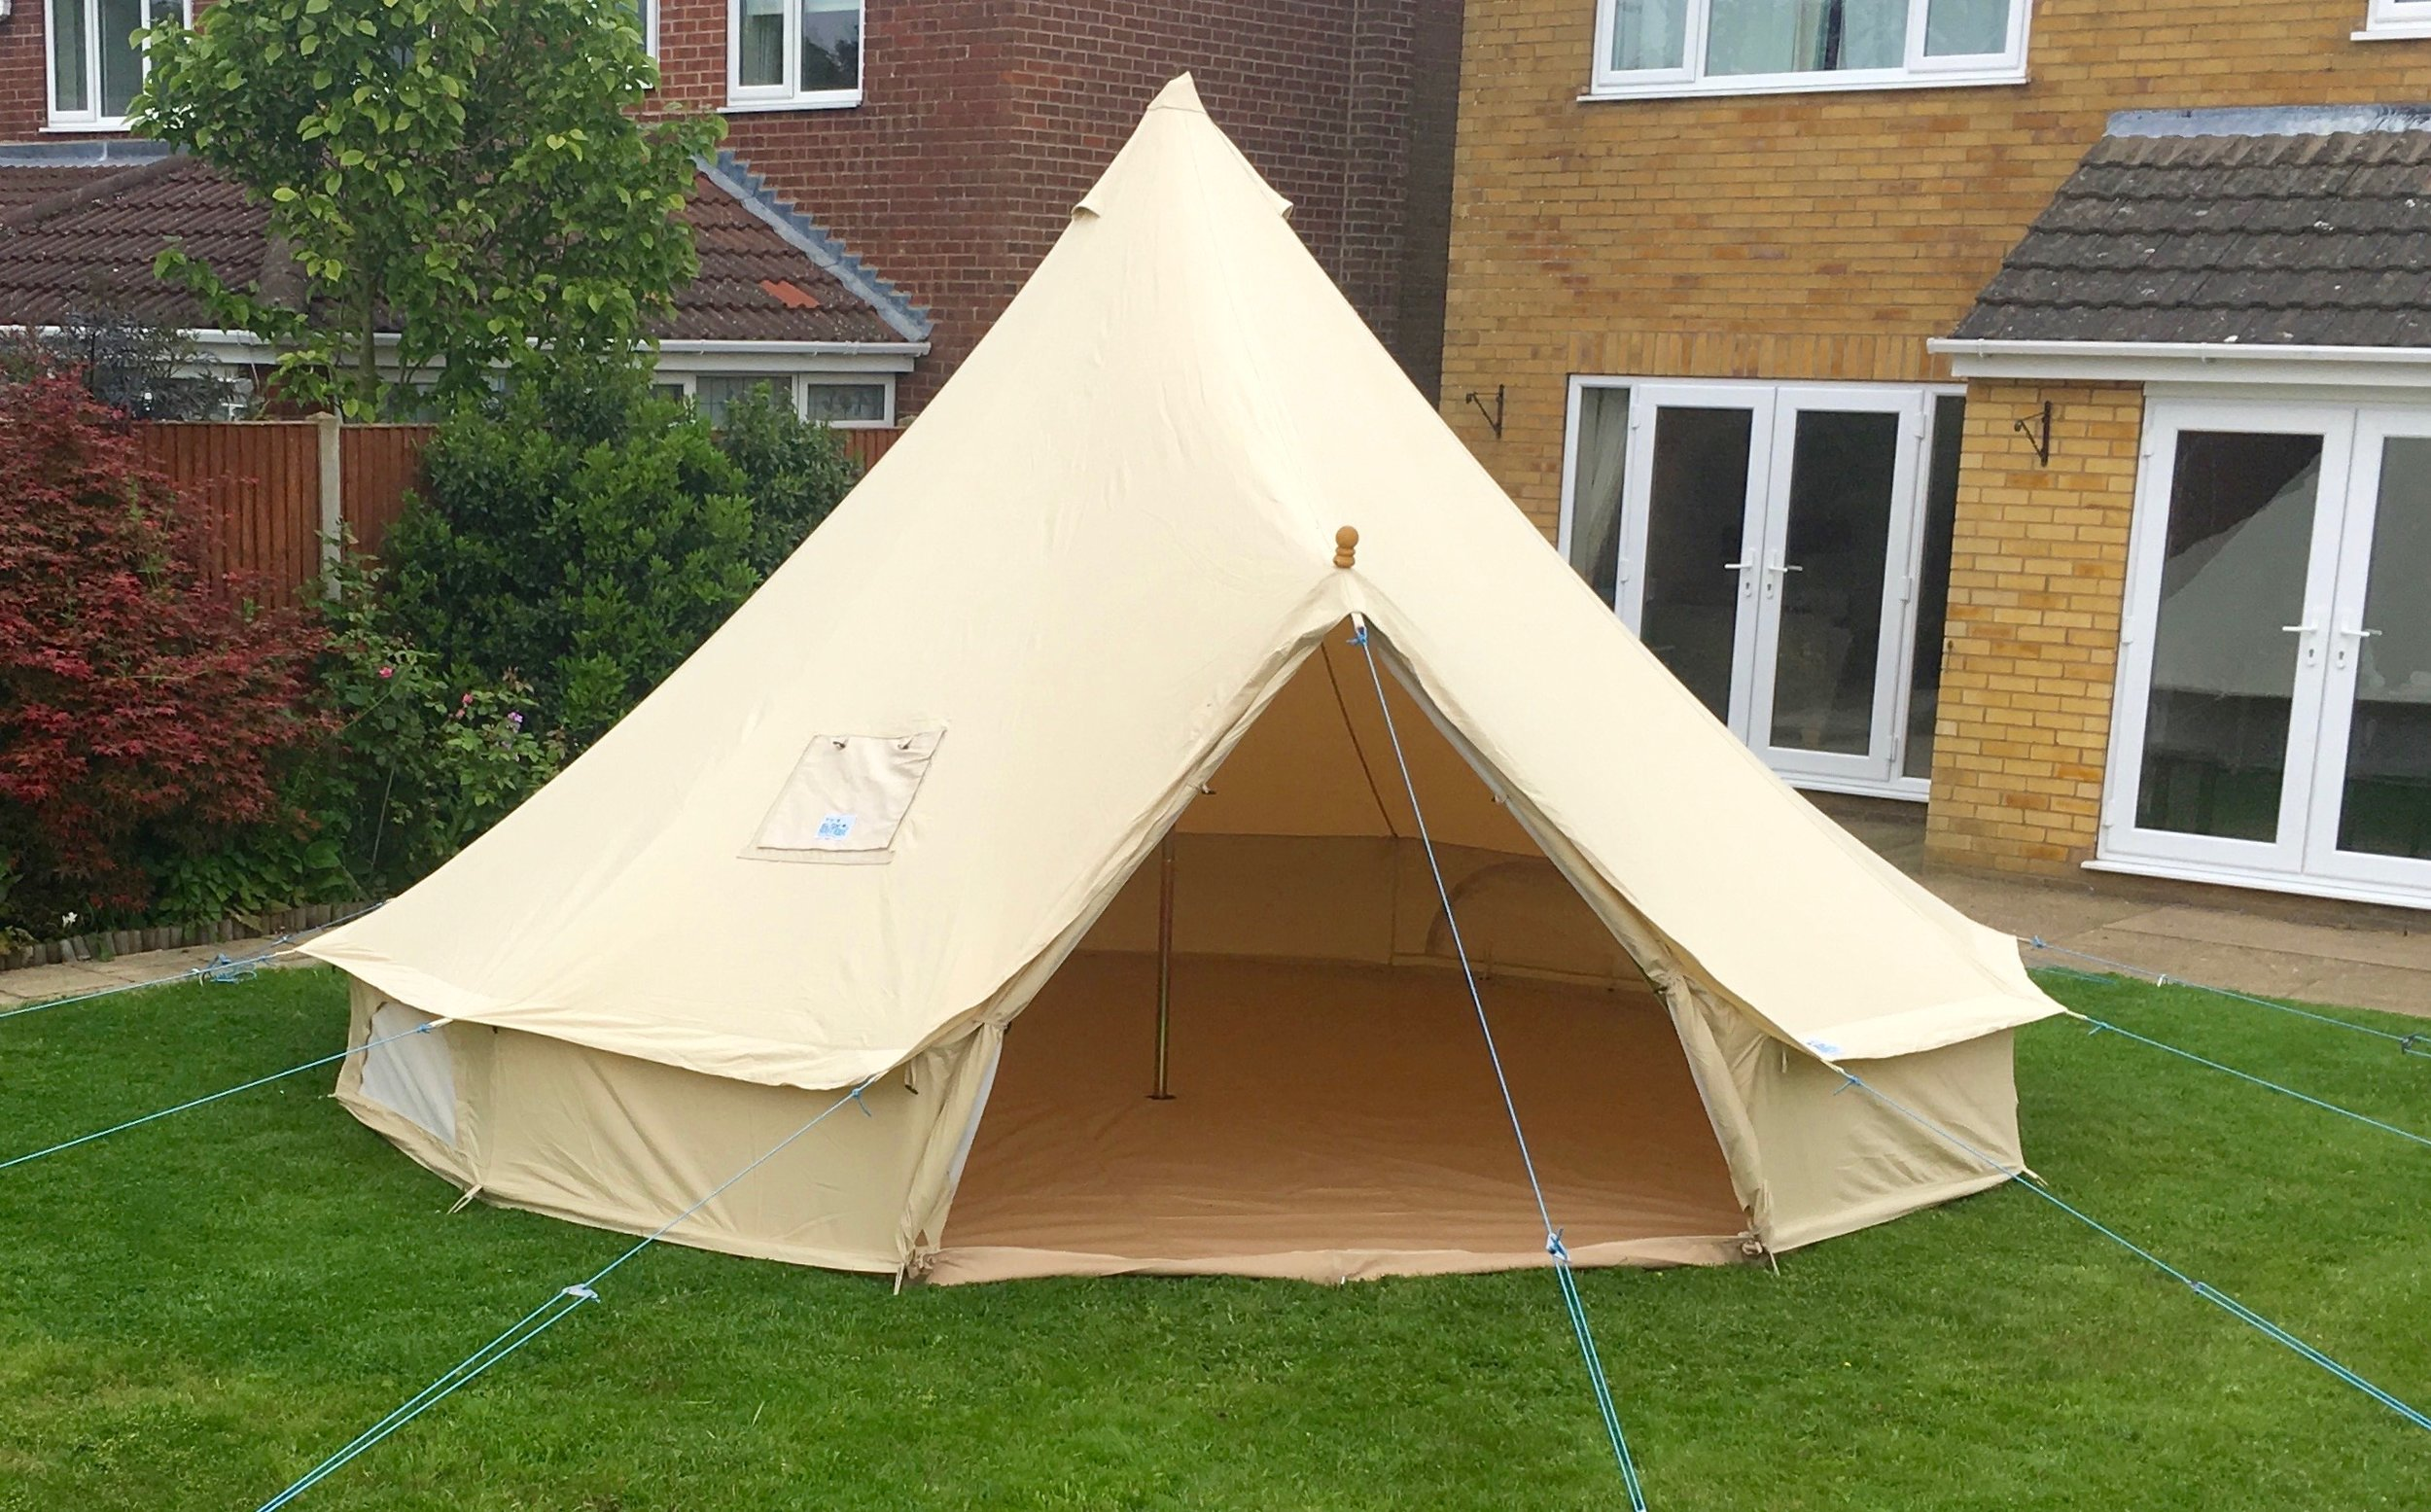 From £100 - We provide the tent for you to put your own stamp on it.